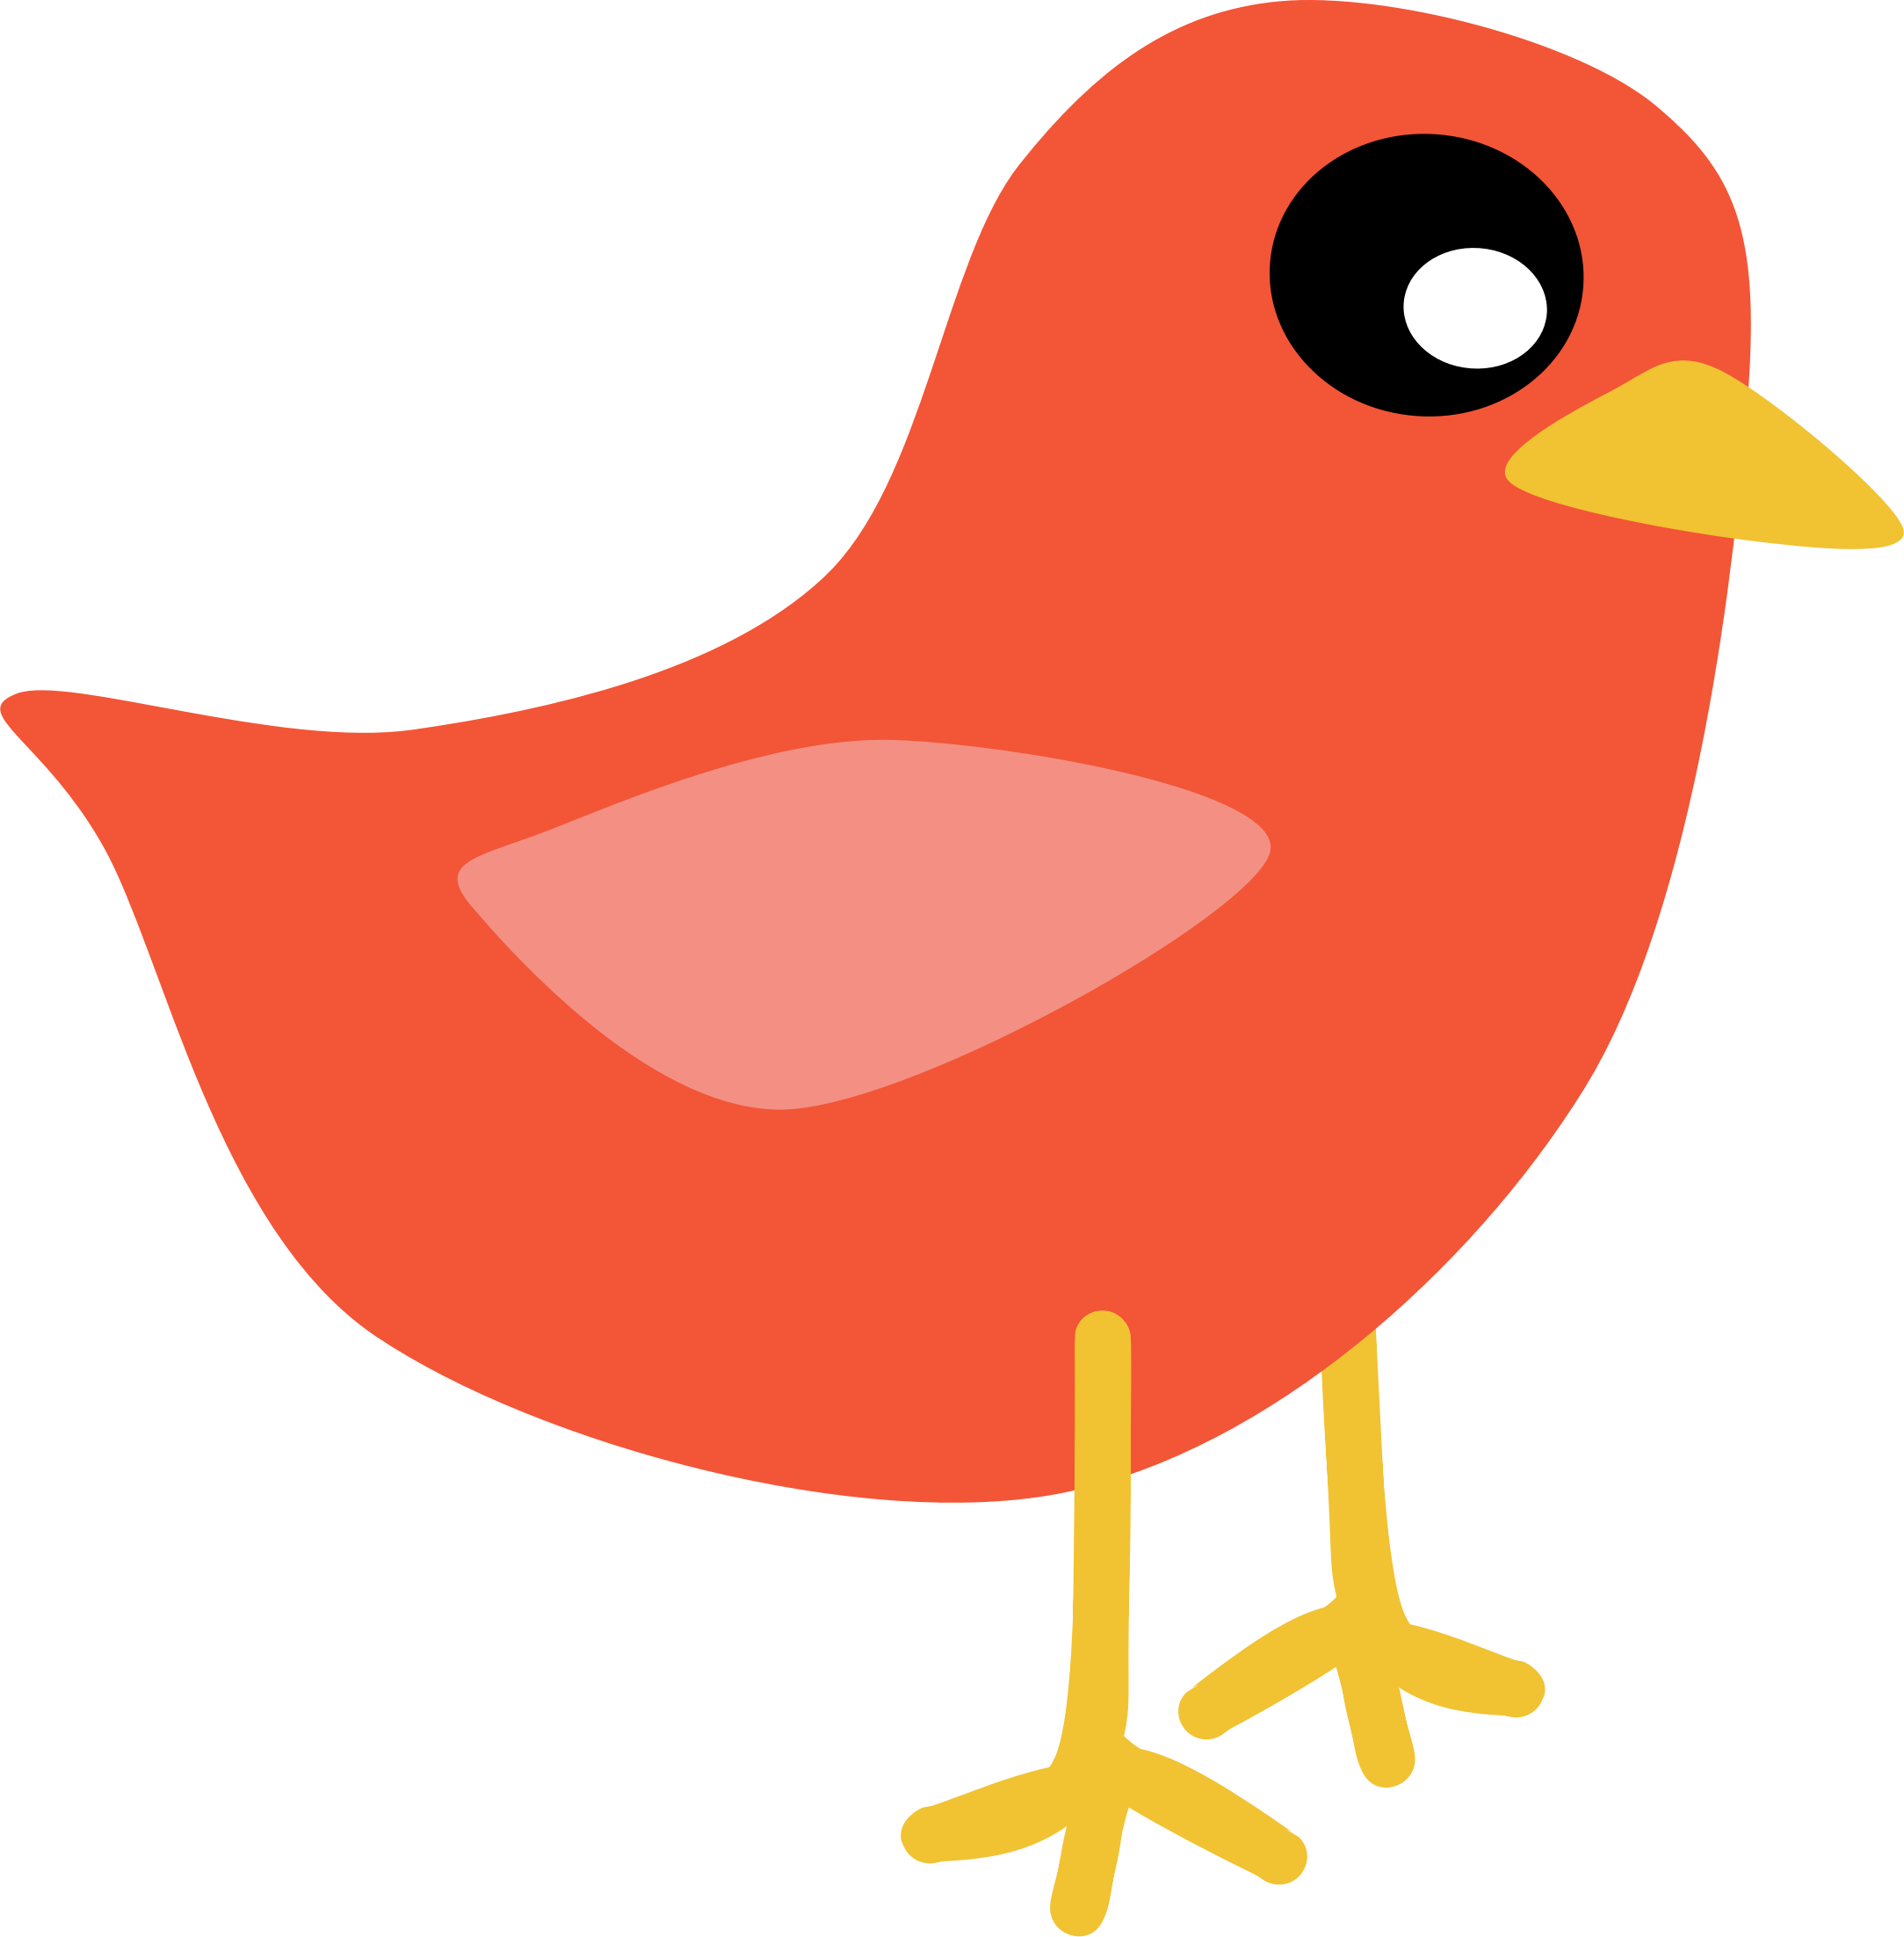 Red Bird By Scout-Red Bird By Scout-8